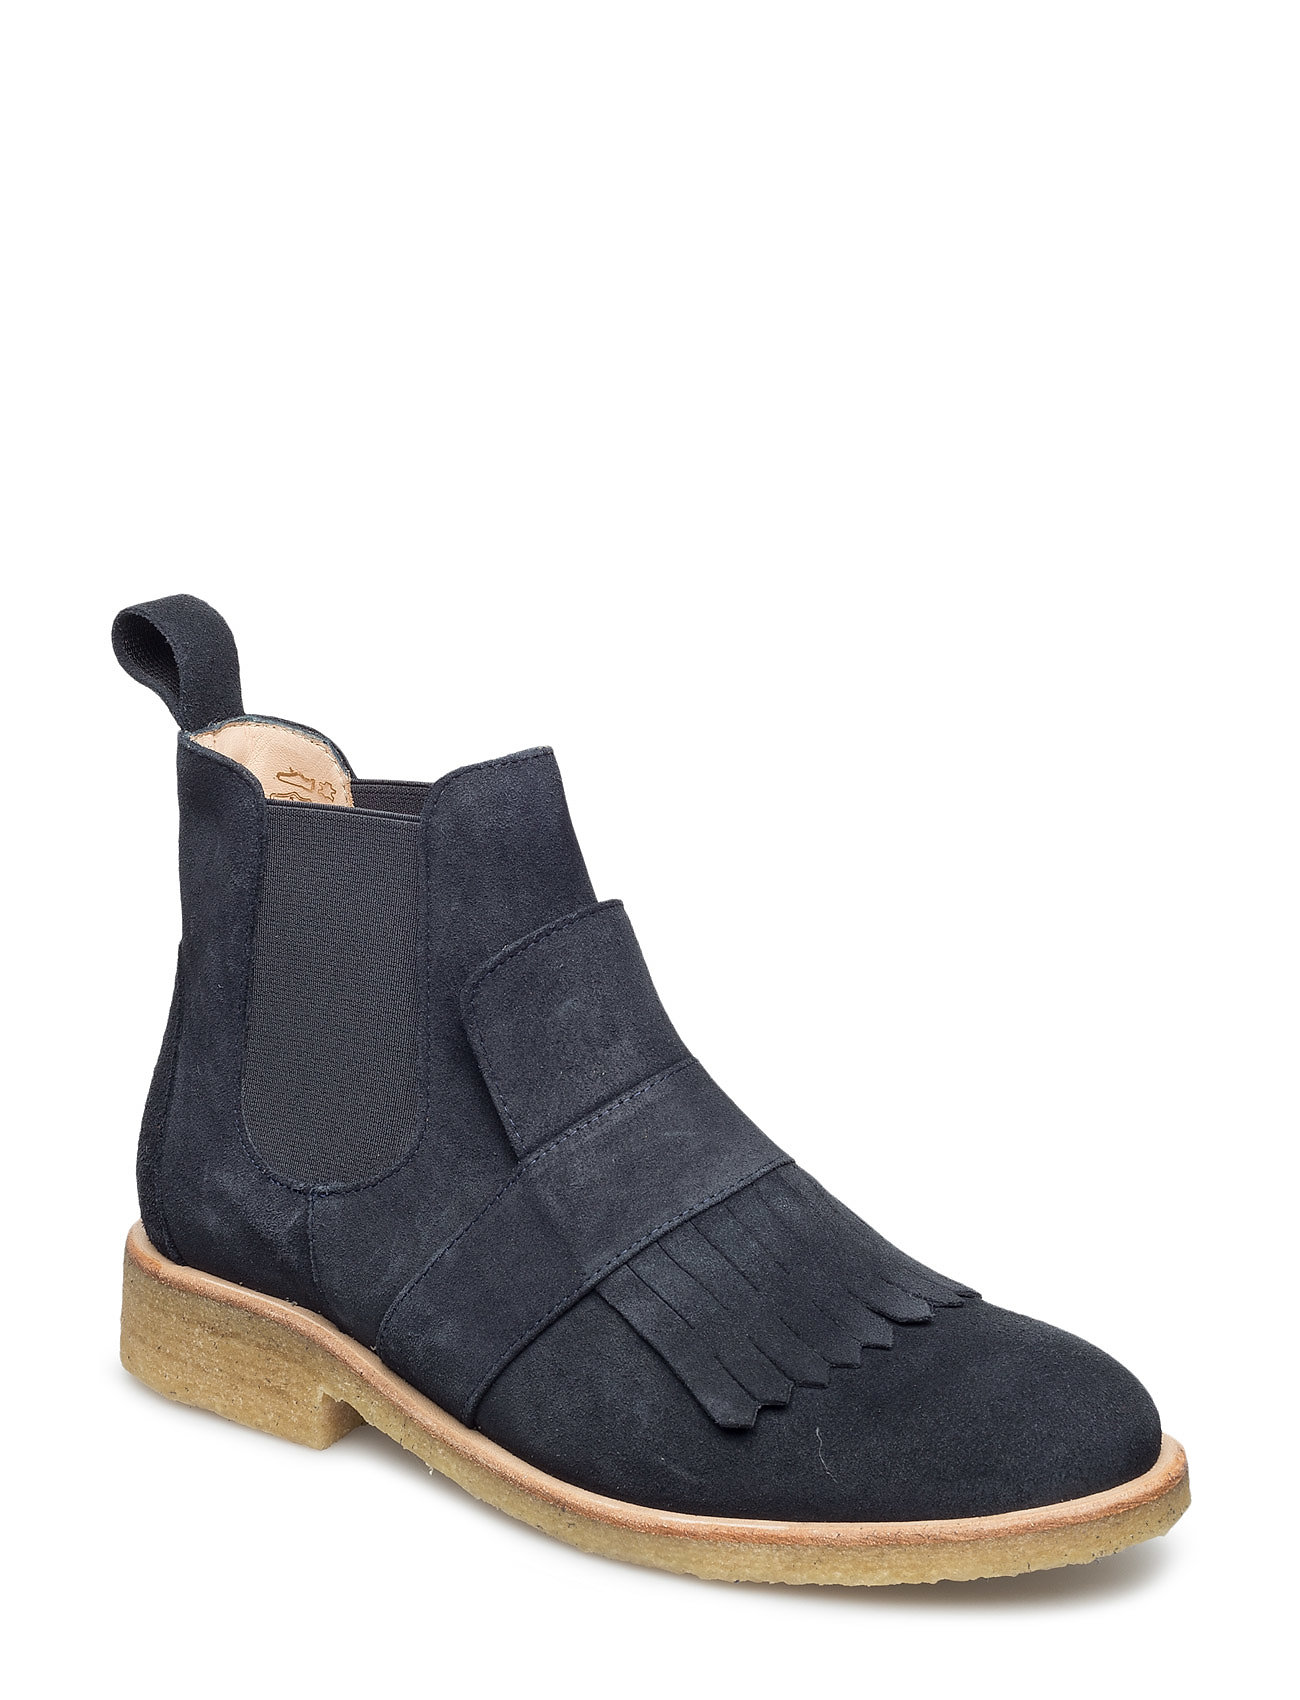 Image of Booties - Flat - With Elastic Shoes Boots Chelsea Boots Ankle Boot - Flat Blå ANGULUS (3452075713)